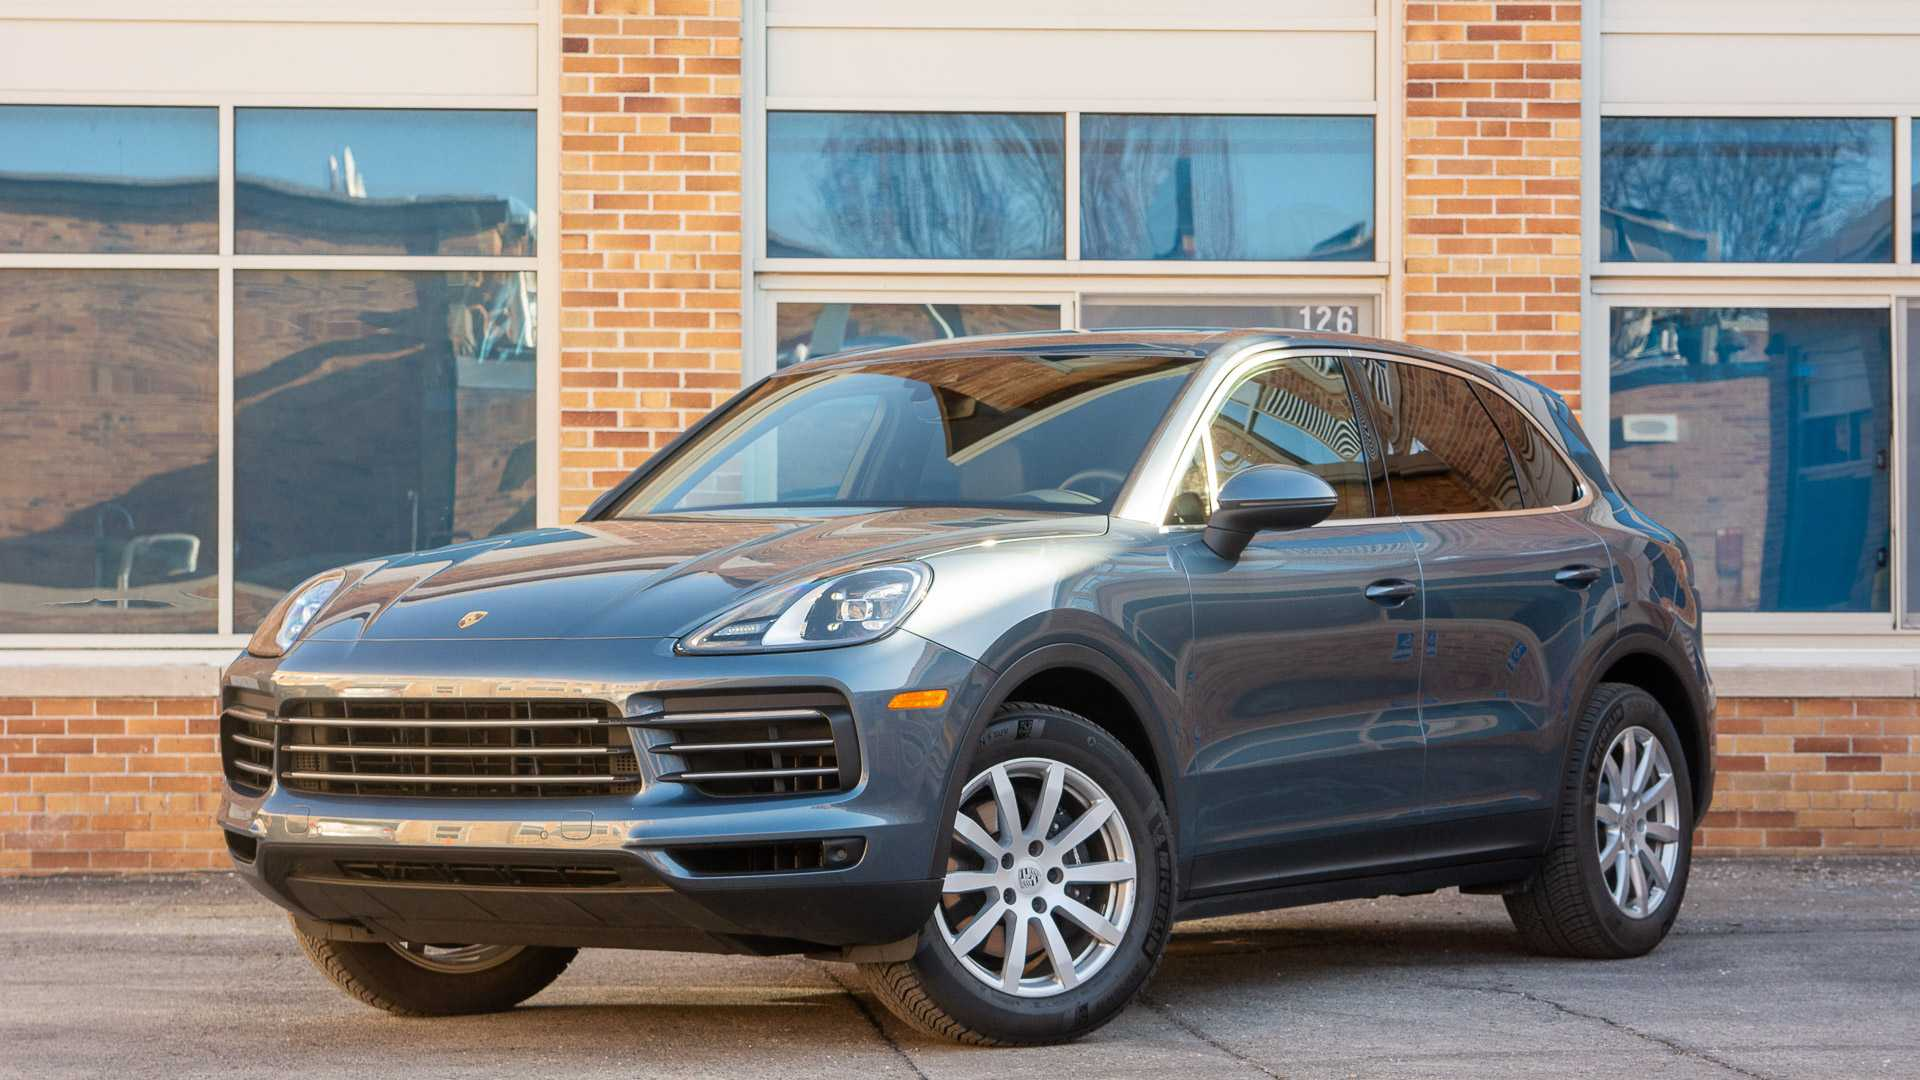 2019 Porsche Cayenne Review: Flavor Without The Heat